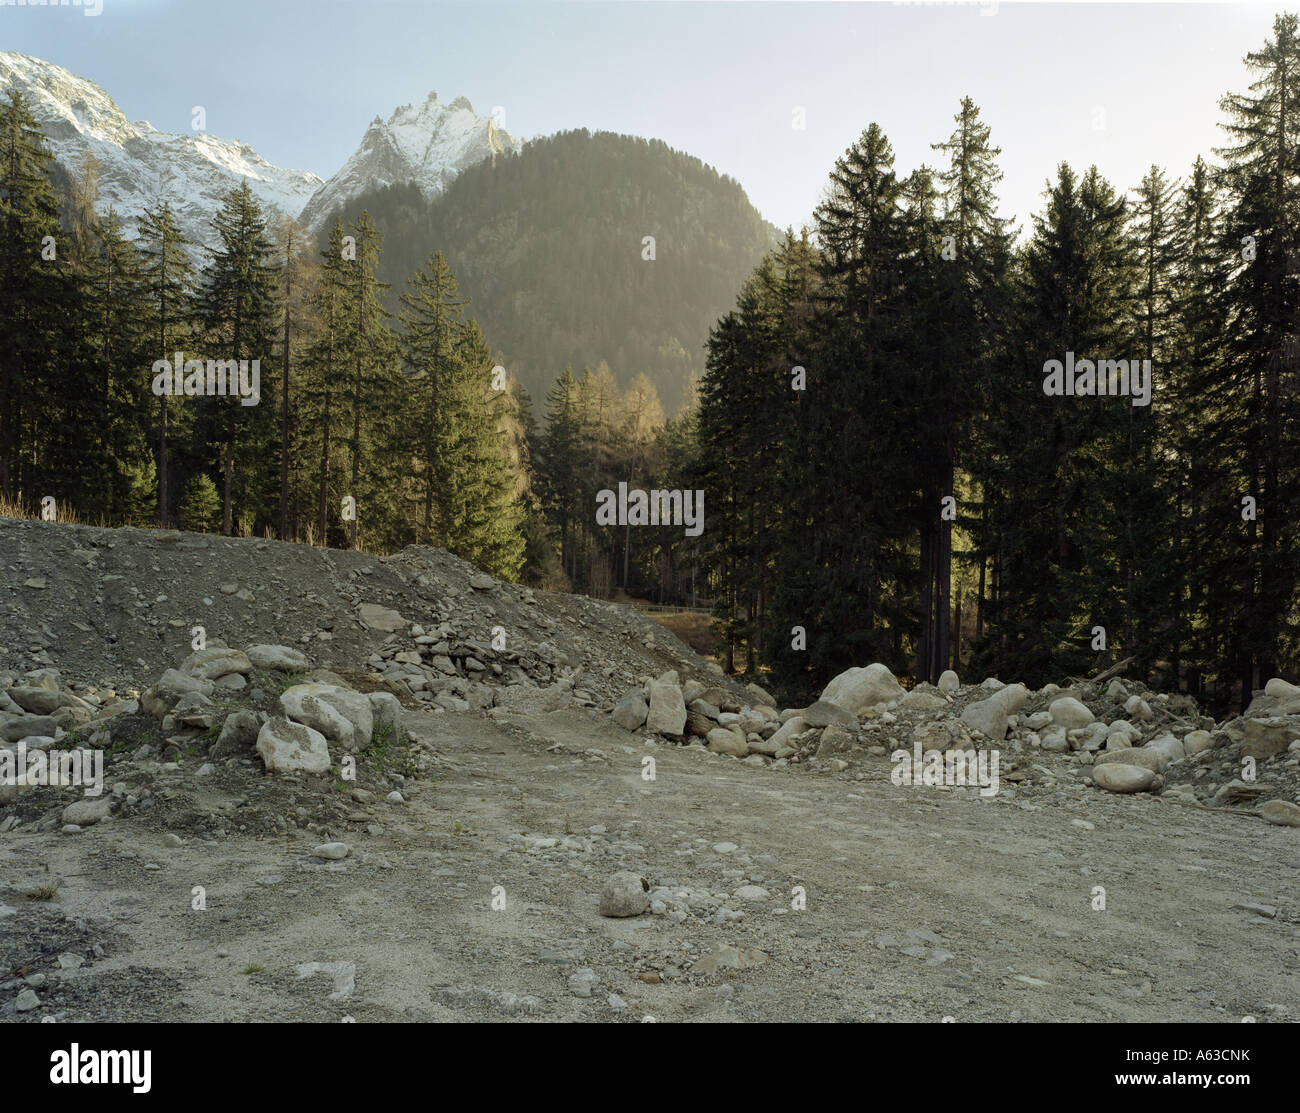 panoramic view of the wood in nearby of Maloia   pass close to saint moritz, swiss europe - Stock Image